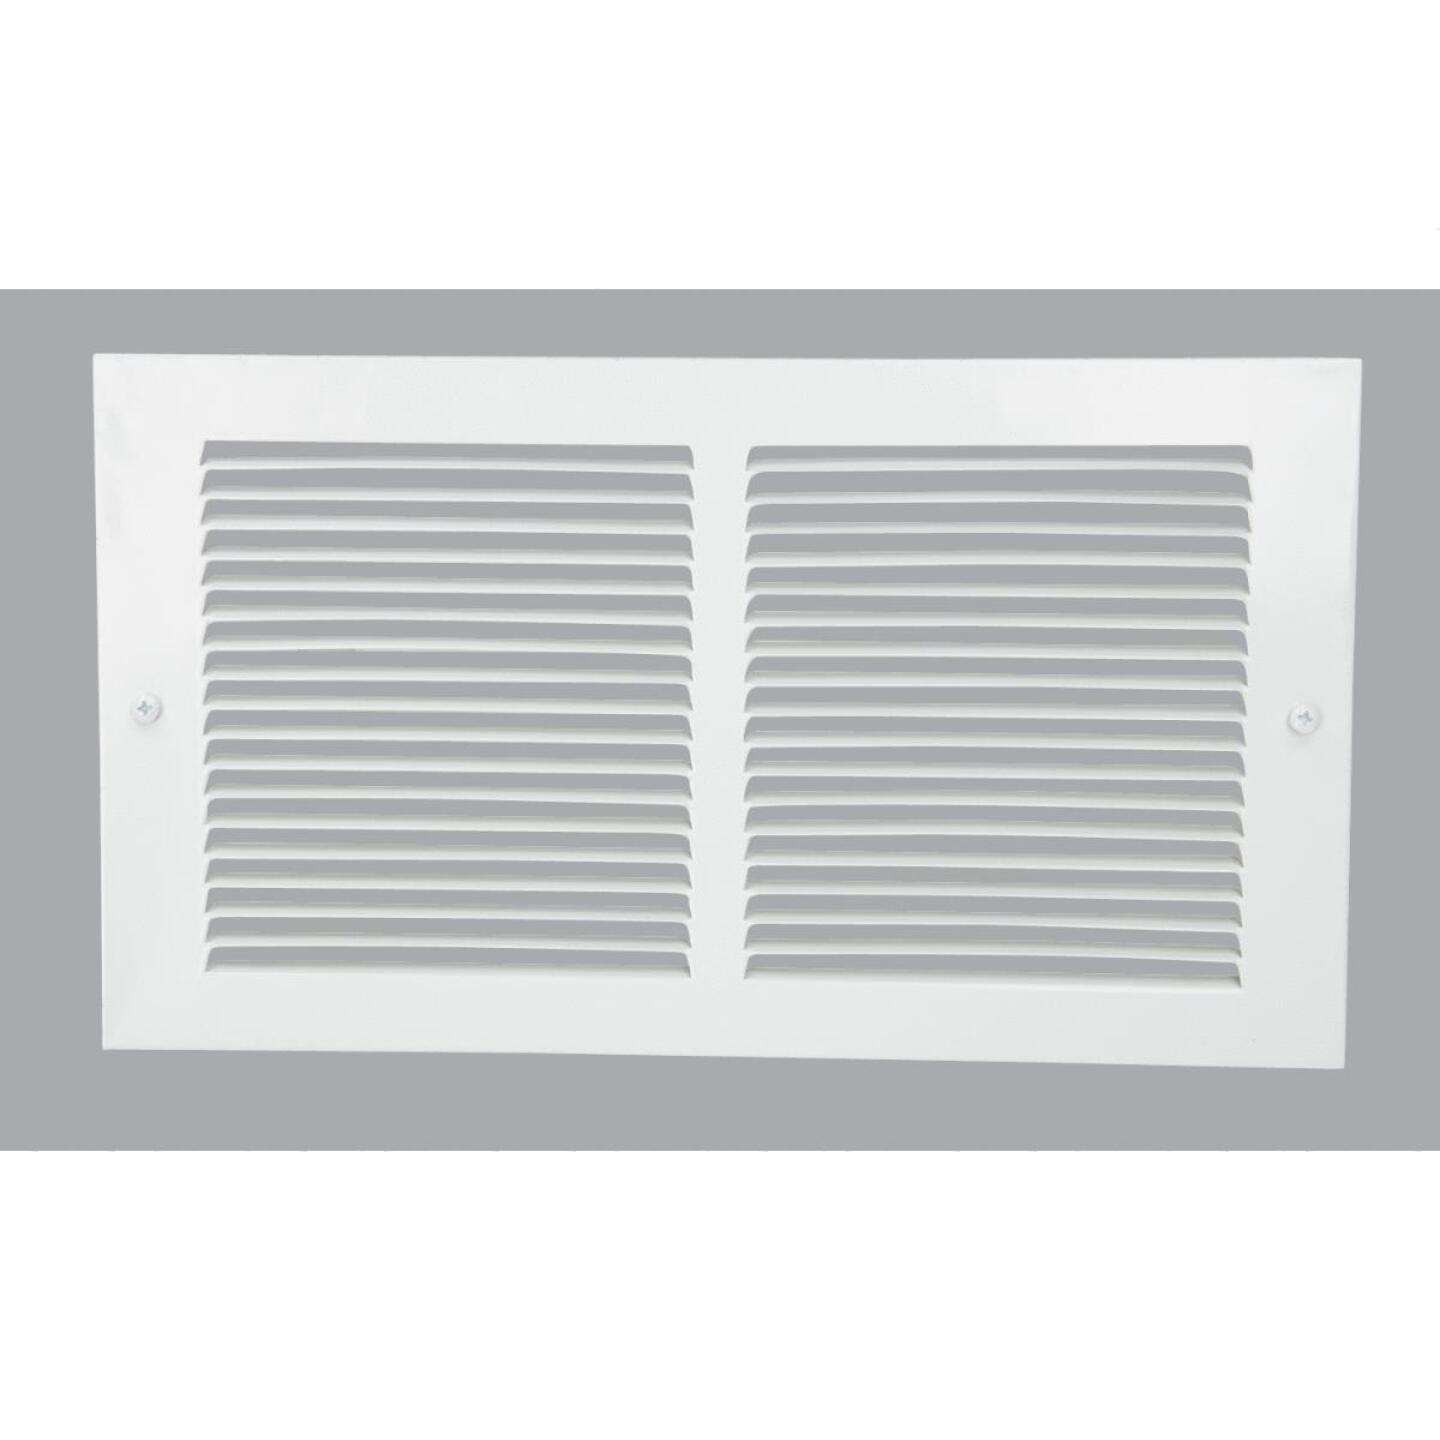 Home Impressions 6 In. x 12 In. White Steel Baseboard Grille Image 1